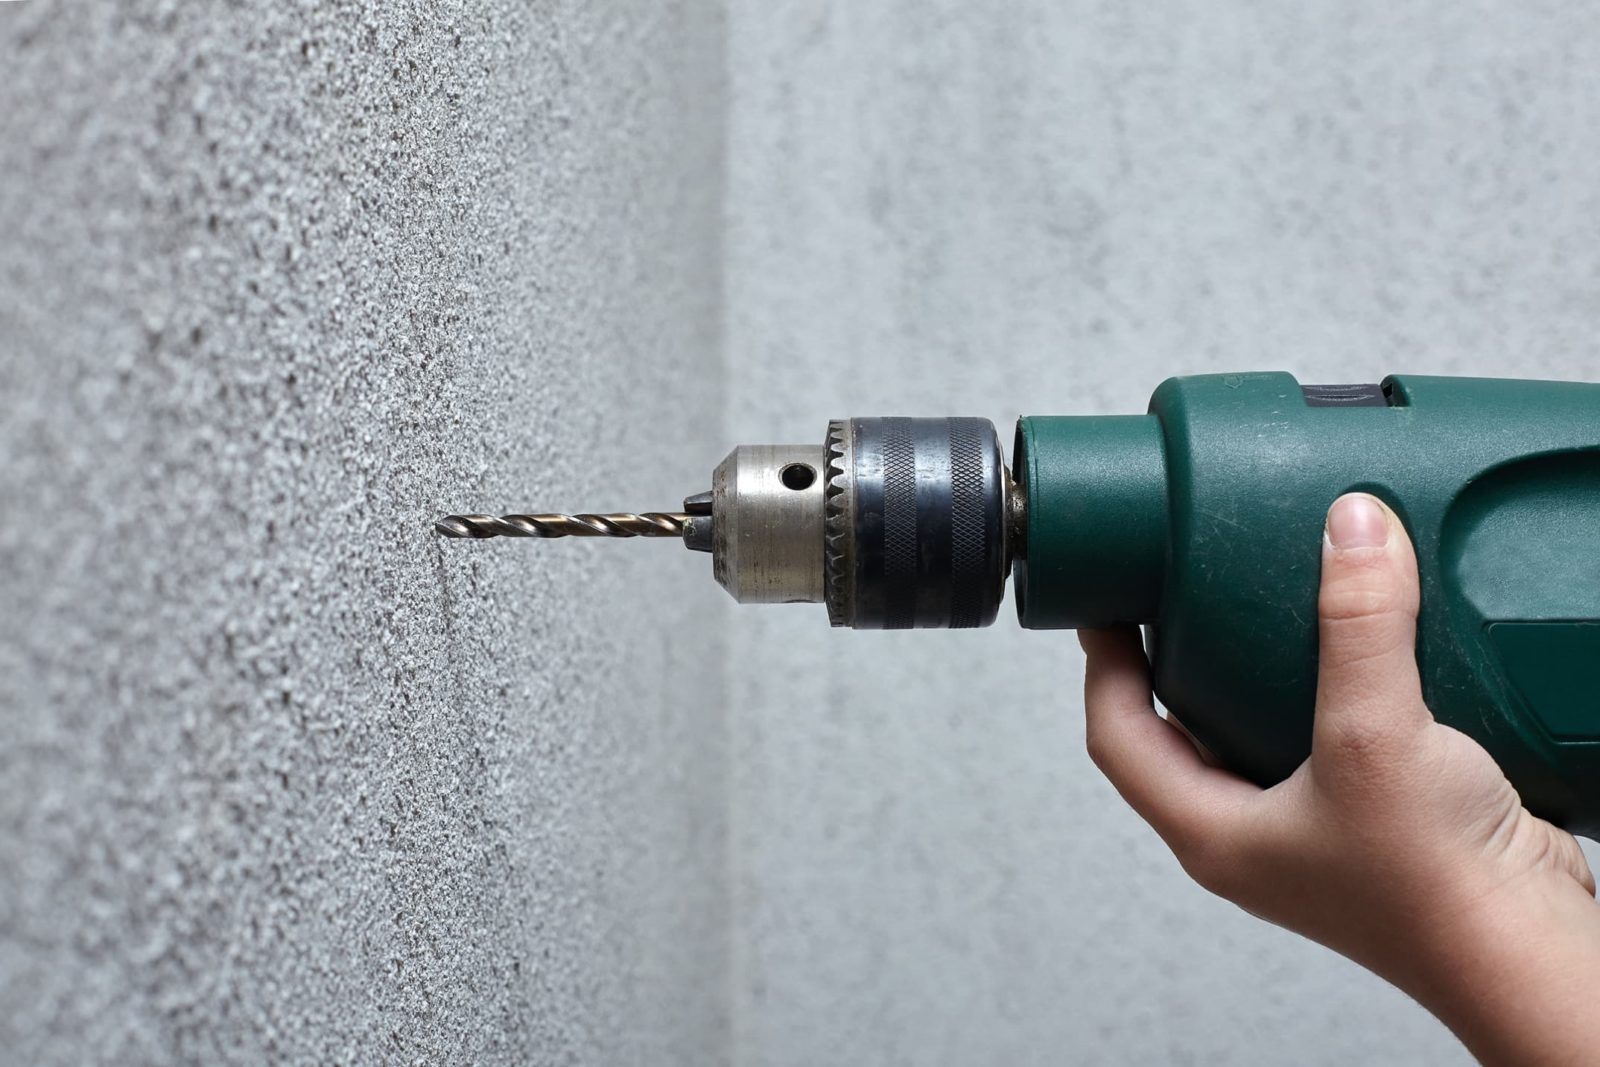 drlling into a wall with an sds hammer drill